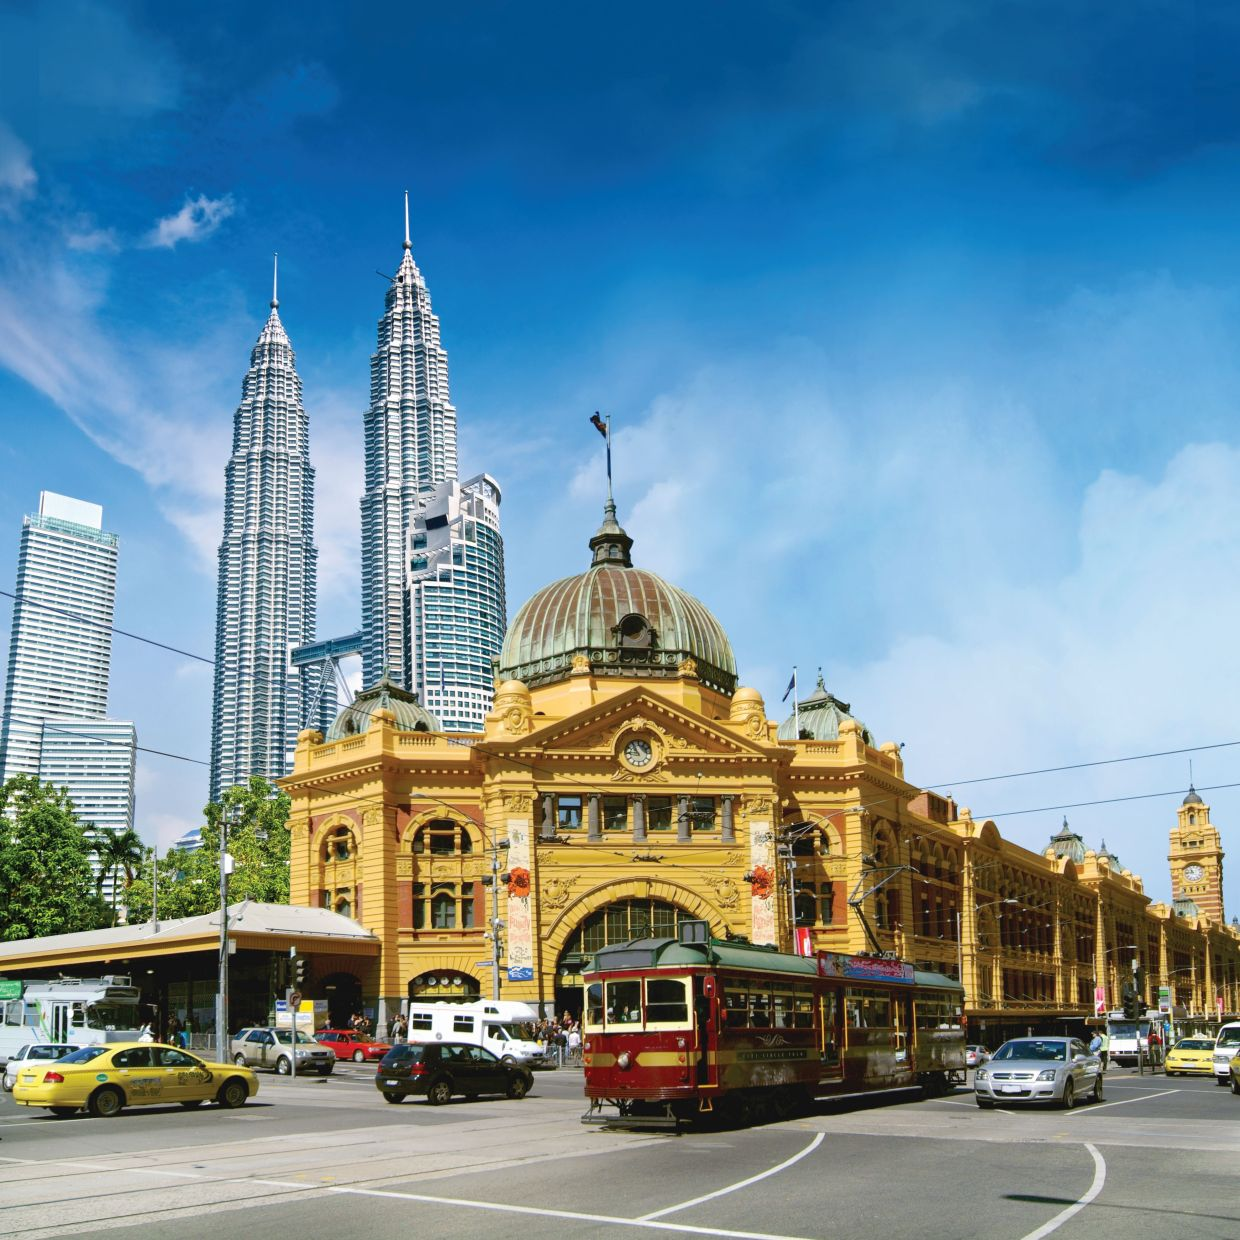 Sunway College provides the opportunity to students in Malaysia to experience world-class Australian education closer to home.